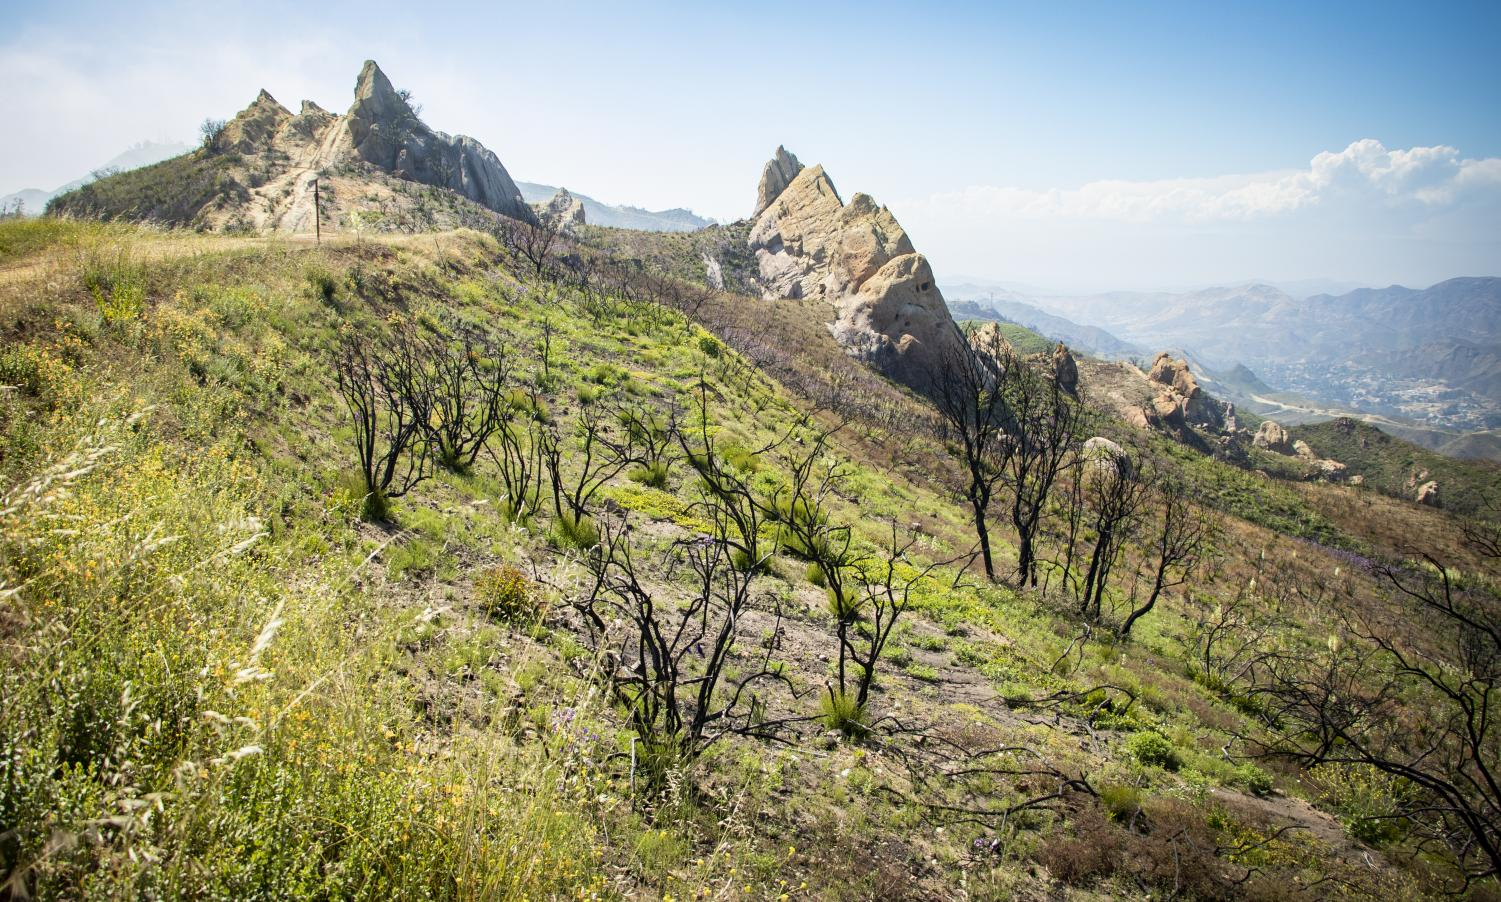 View of the of the Santa Monica Mountains off of Corral Canyon Road in Malibu Calif. on June 22, 2019.